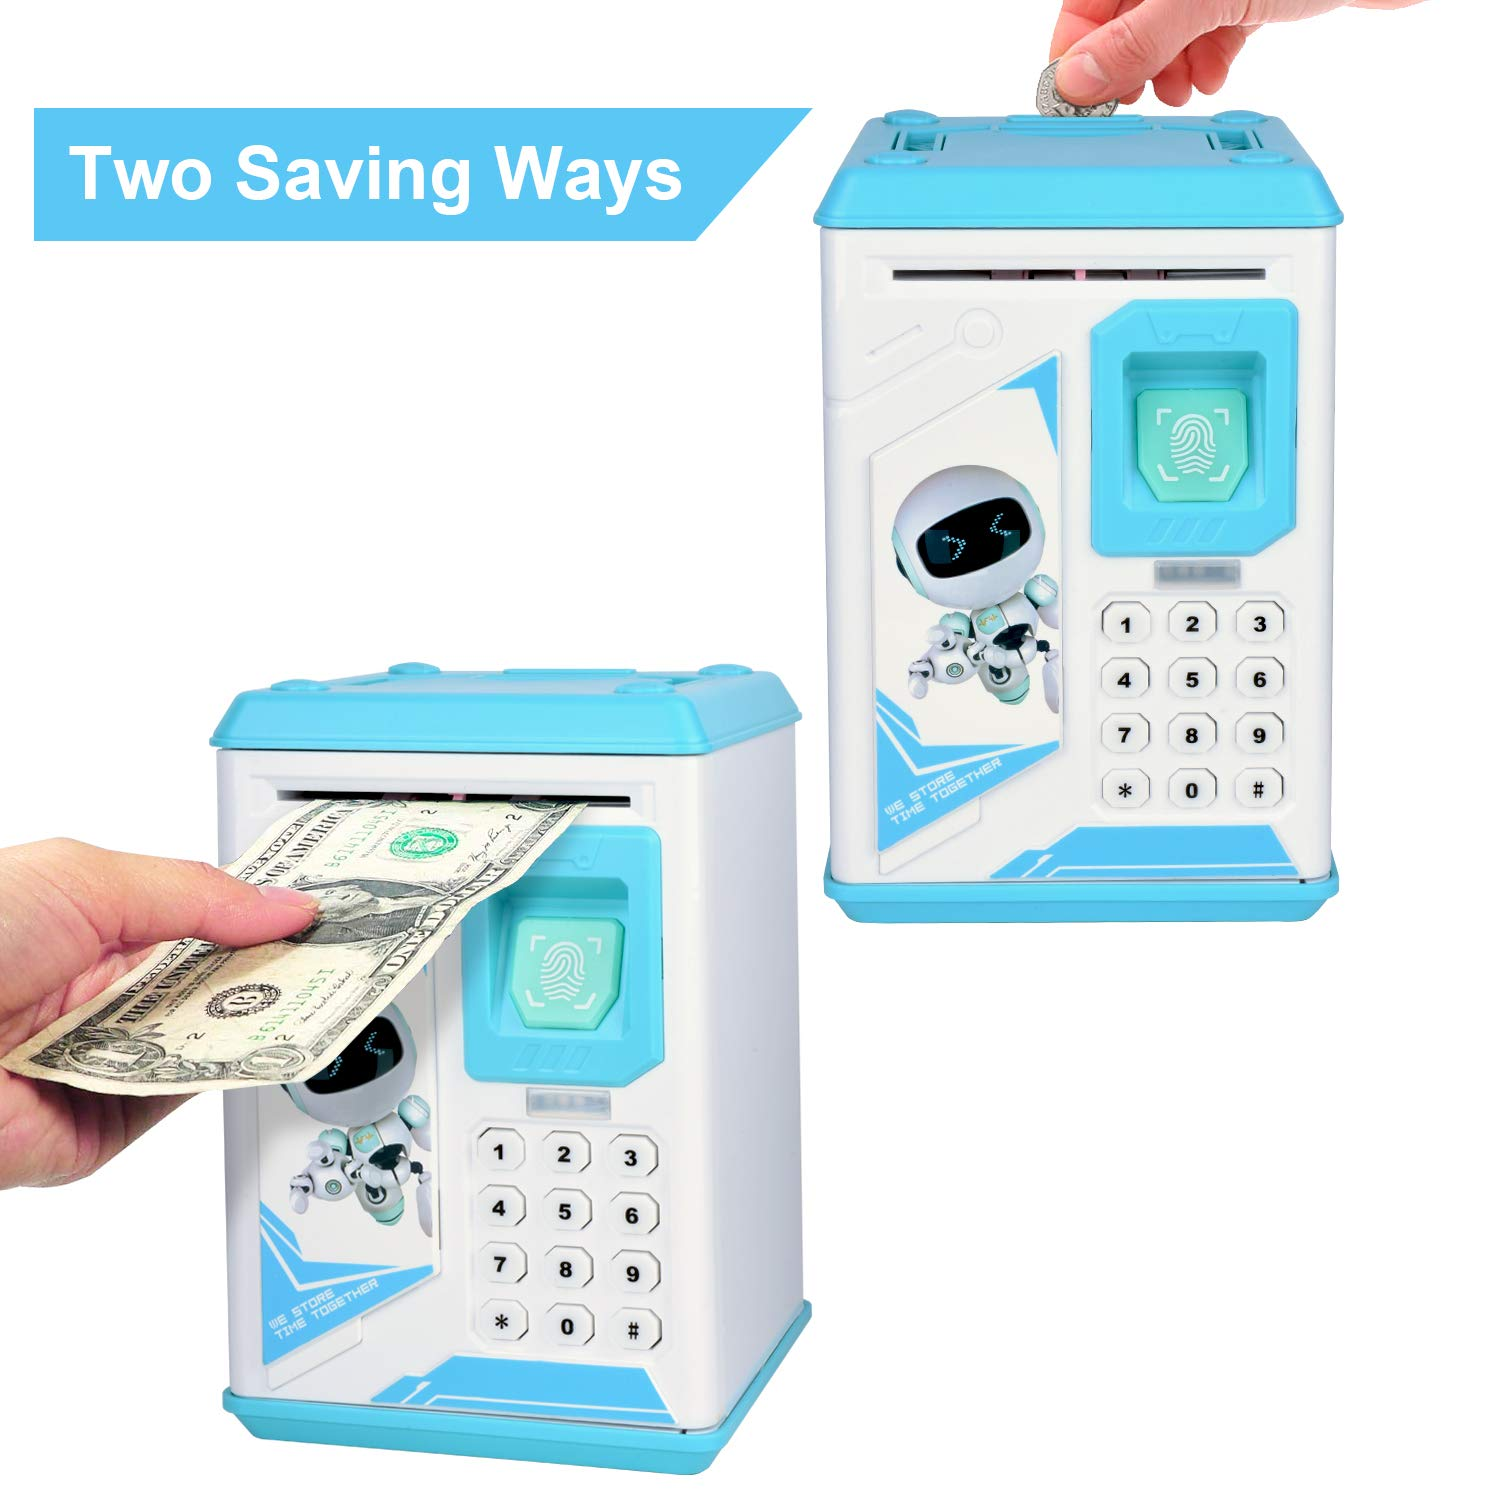 Lefree Mini ATM Electronic Coin Bank,Smart Electronic Piggy Bank, Safe with Password Mini ATM Bank,Mini ATM Electronic Coin Bank Box for Children by Lefree